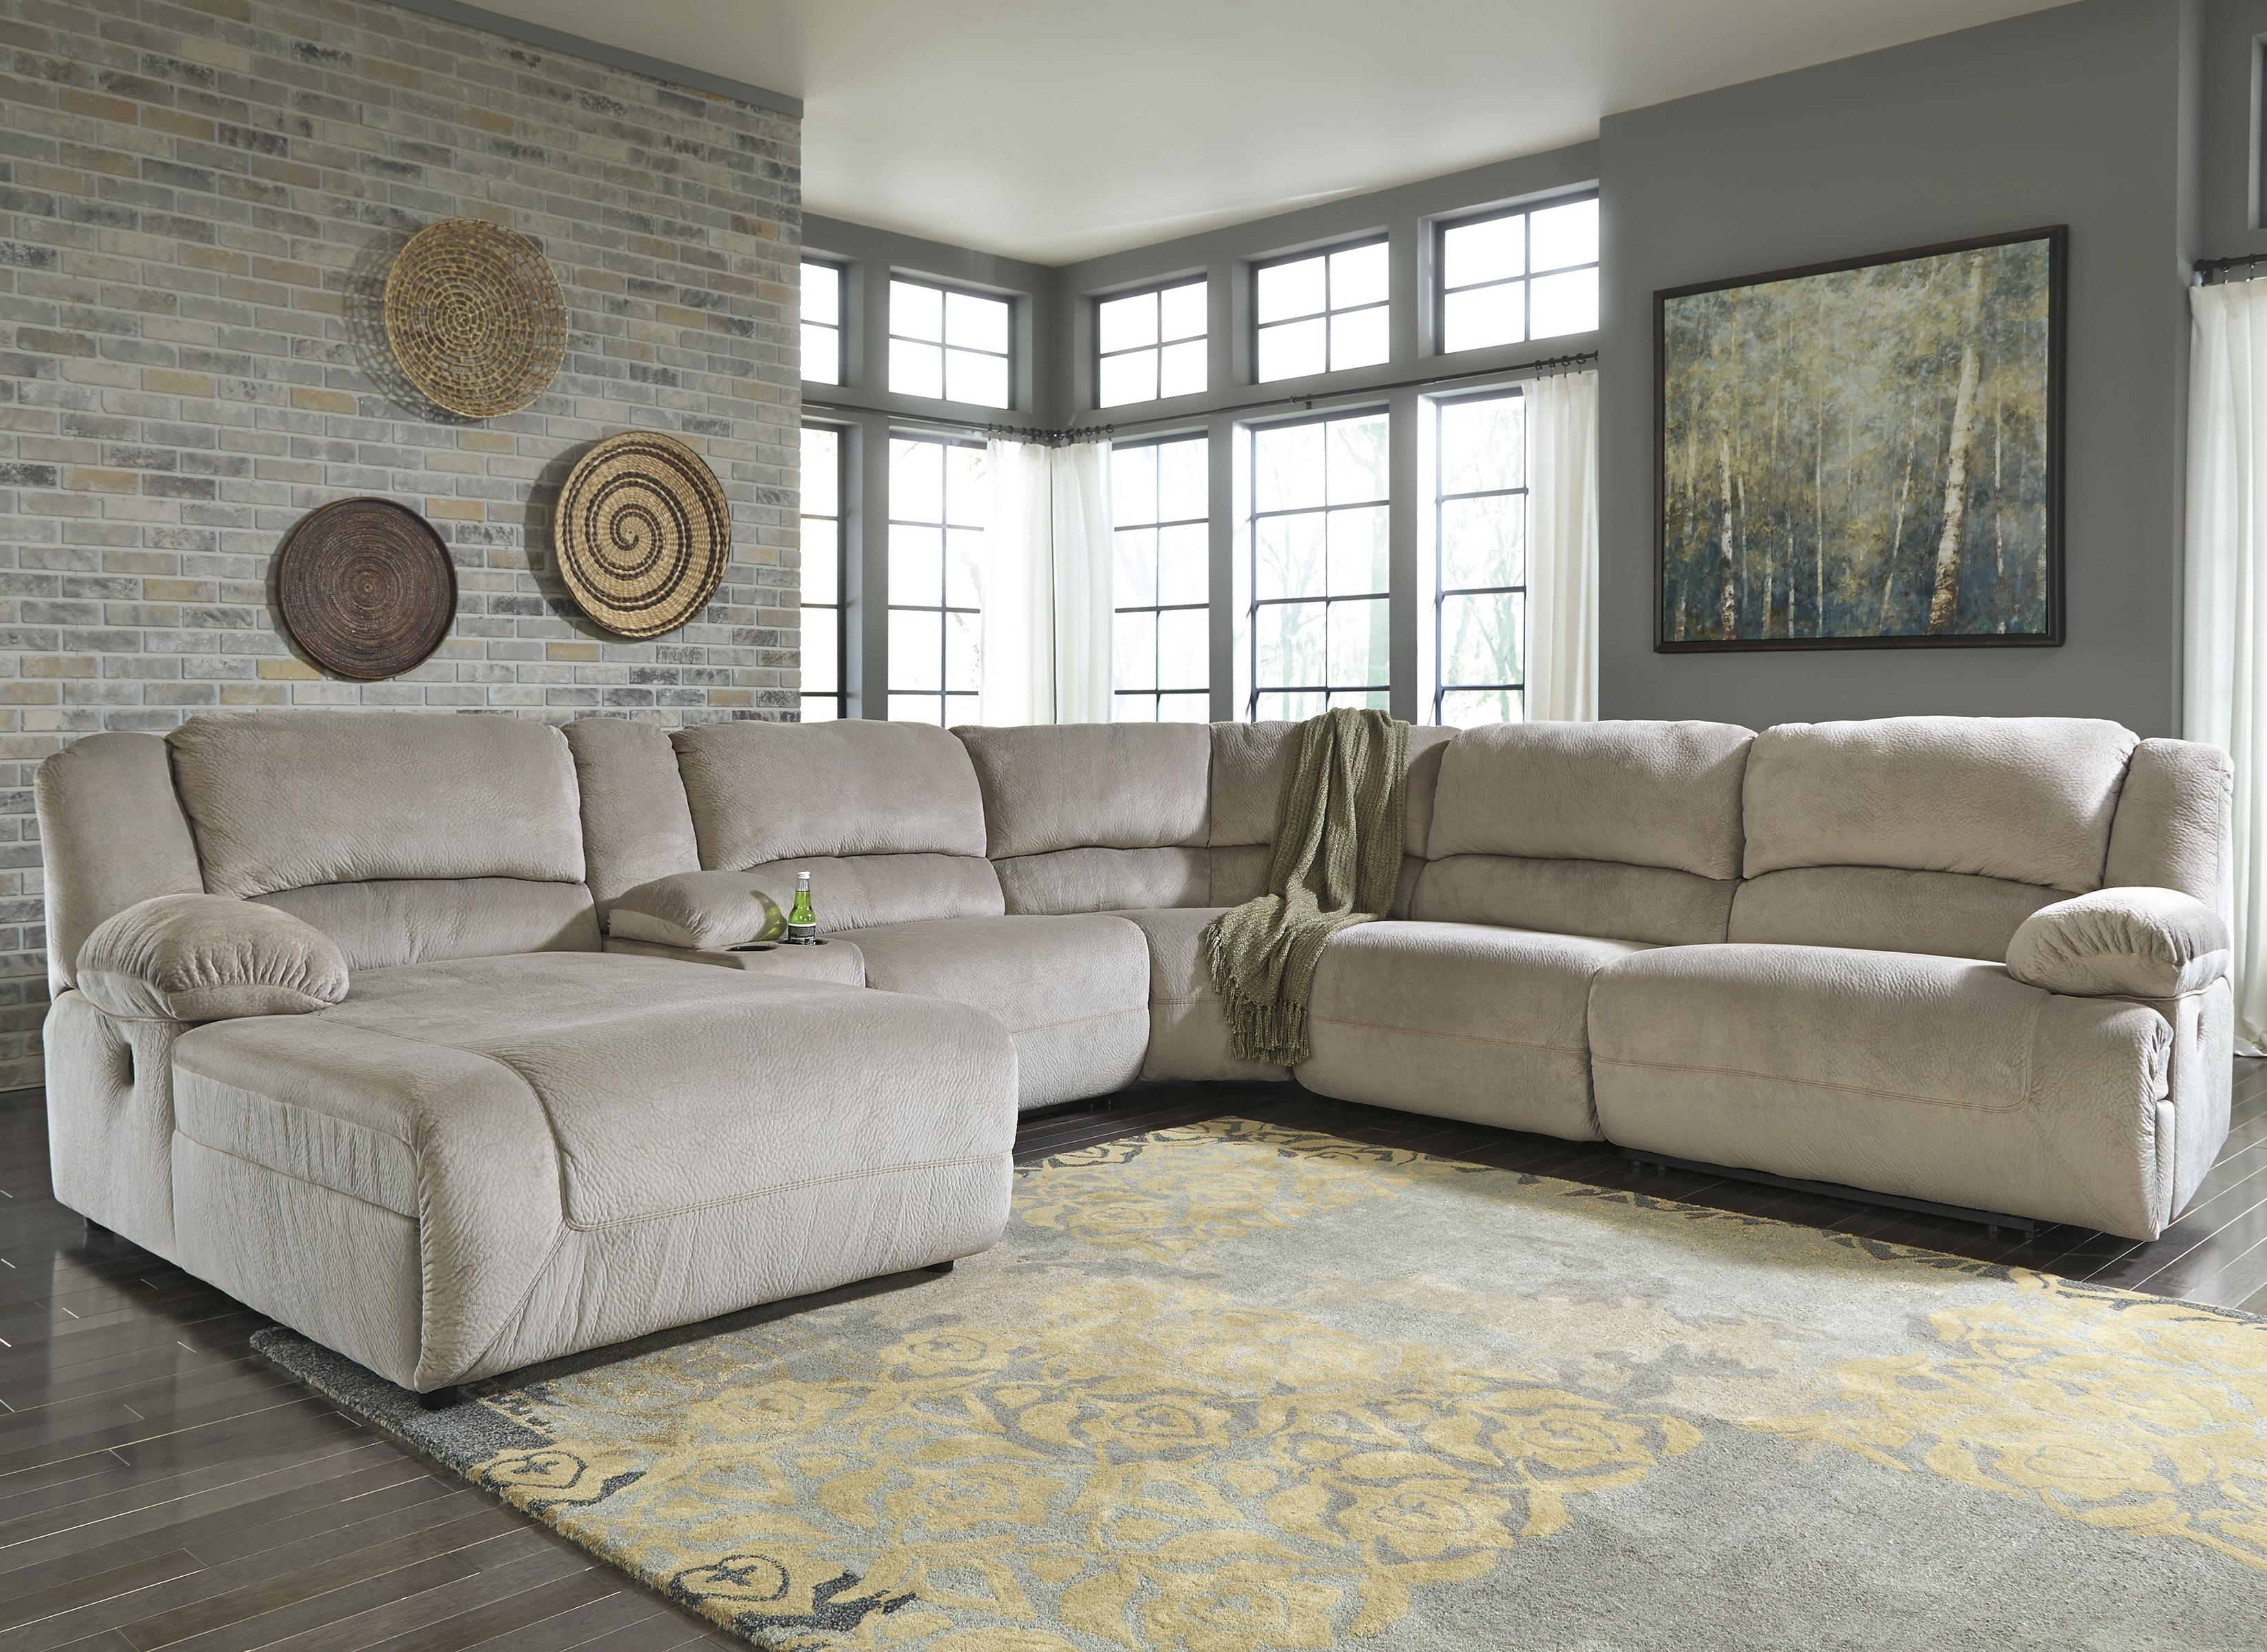 Sectional Sofas With Chaise And Recliner Throughout Current Reclining Sectional With Console & Right Press Back Chaise (View 14 of 15)